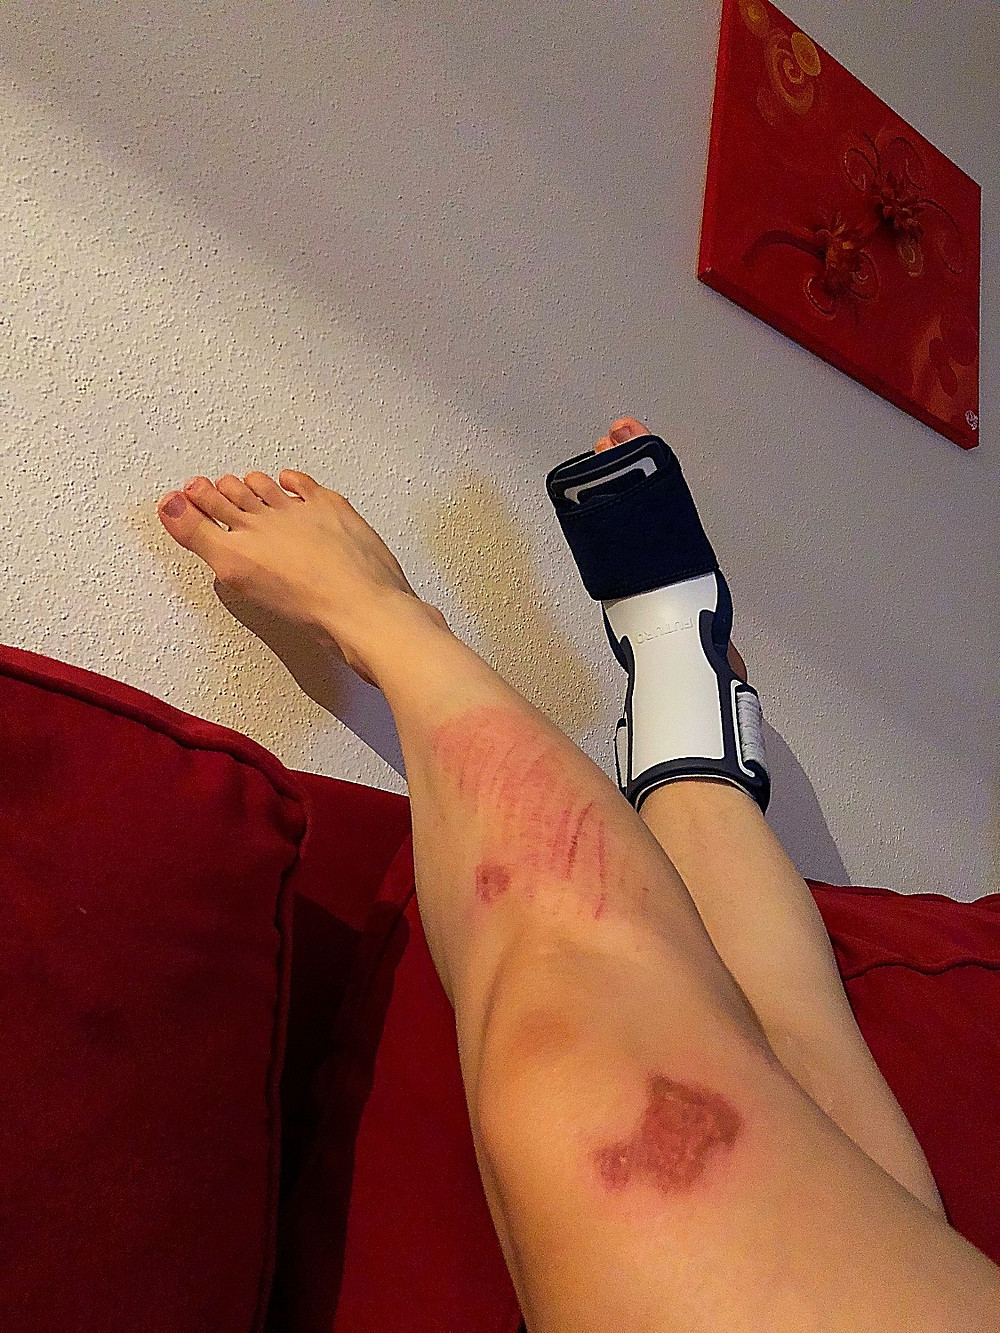 Injure leg with brace boot, bruises and scabs